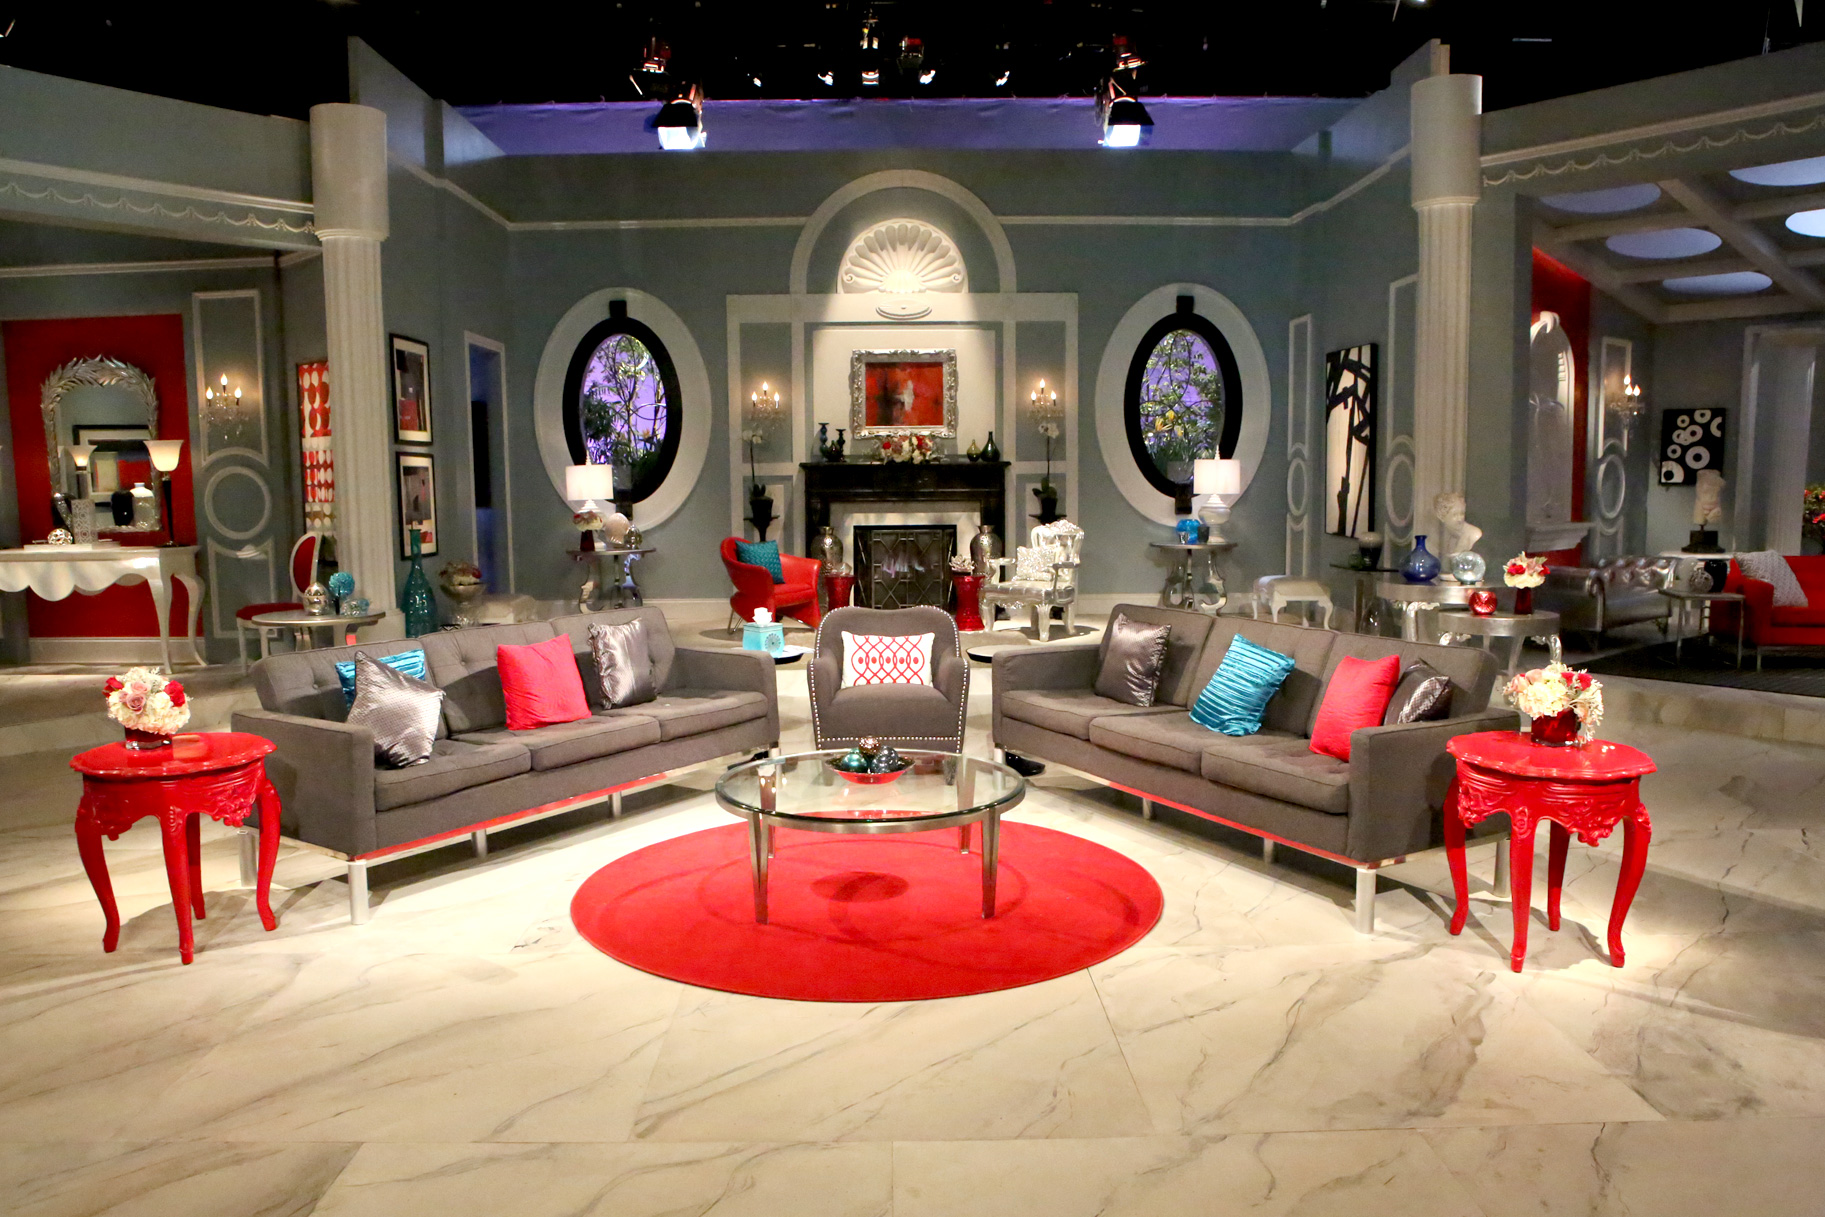 Rhobh Reunion Tour The Set The Real Housewives Of-6787